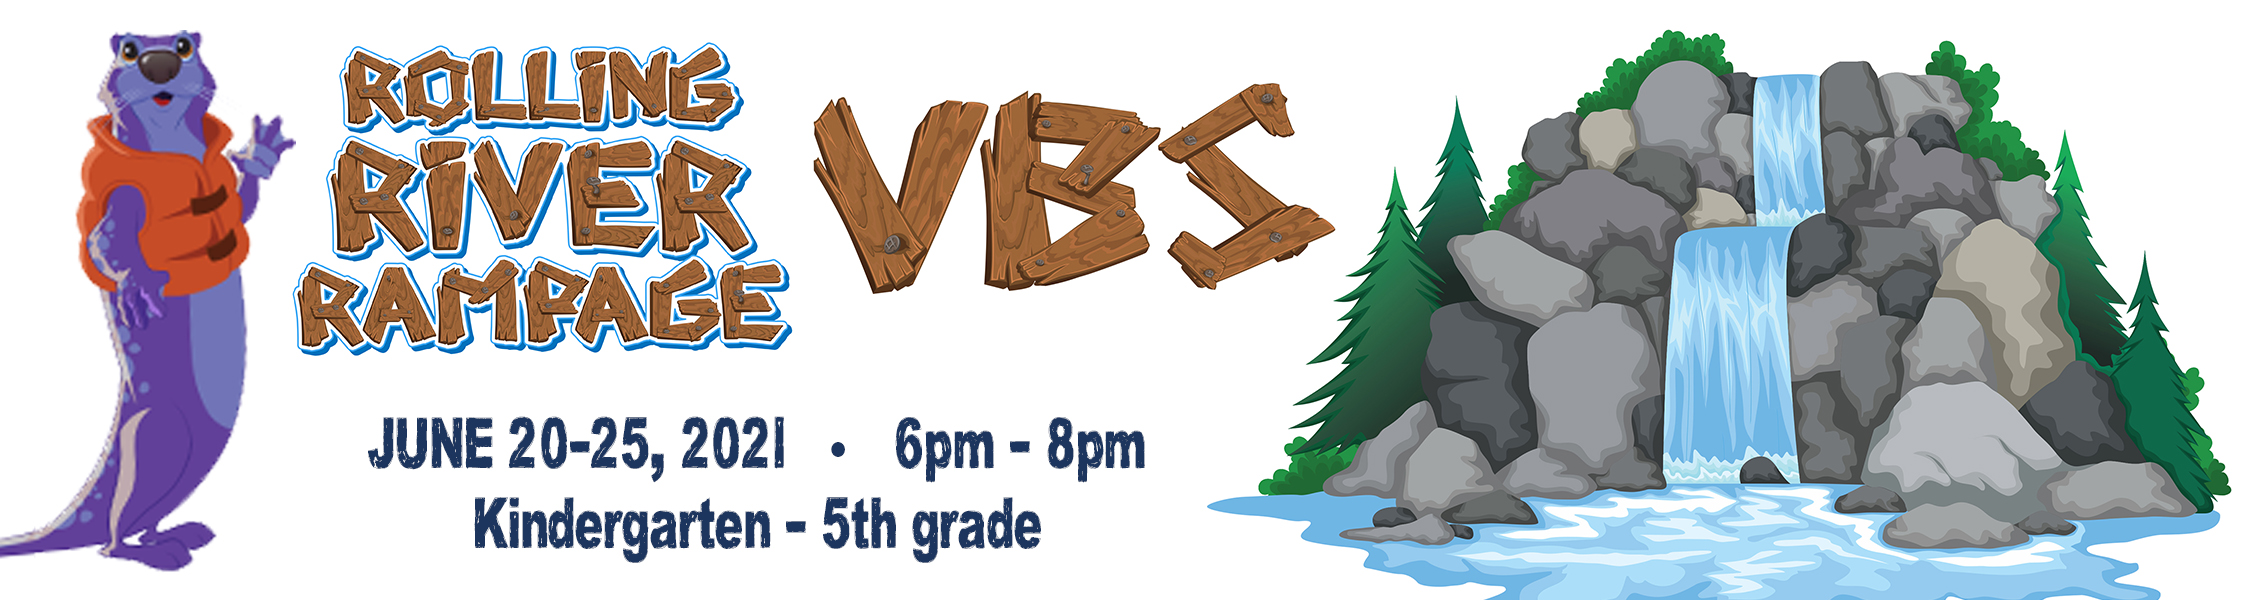 Mission VBS